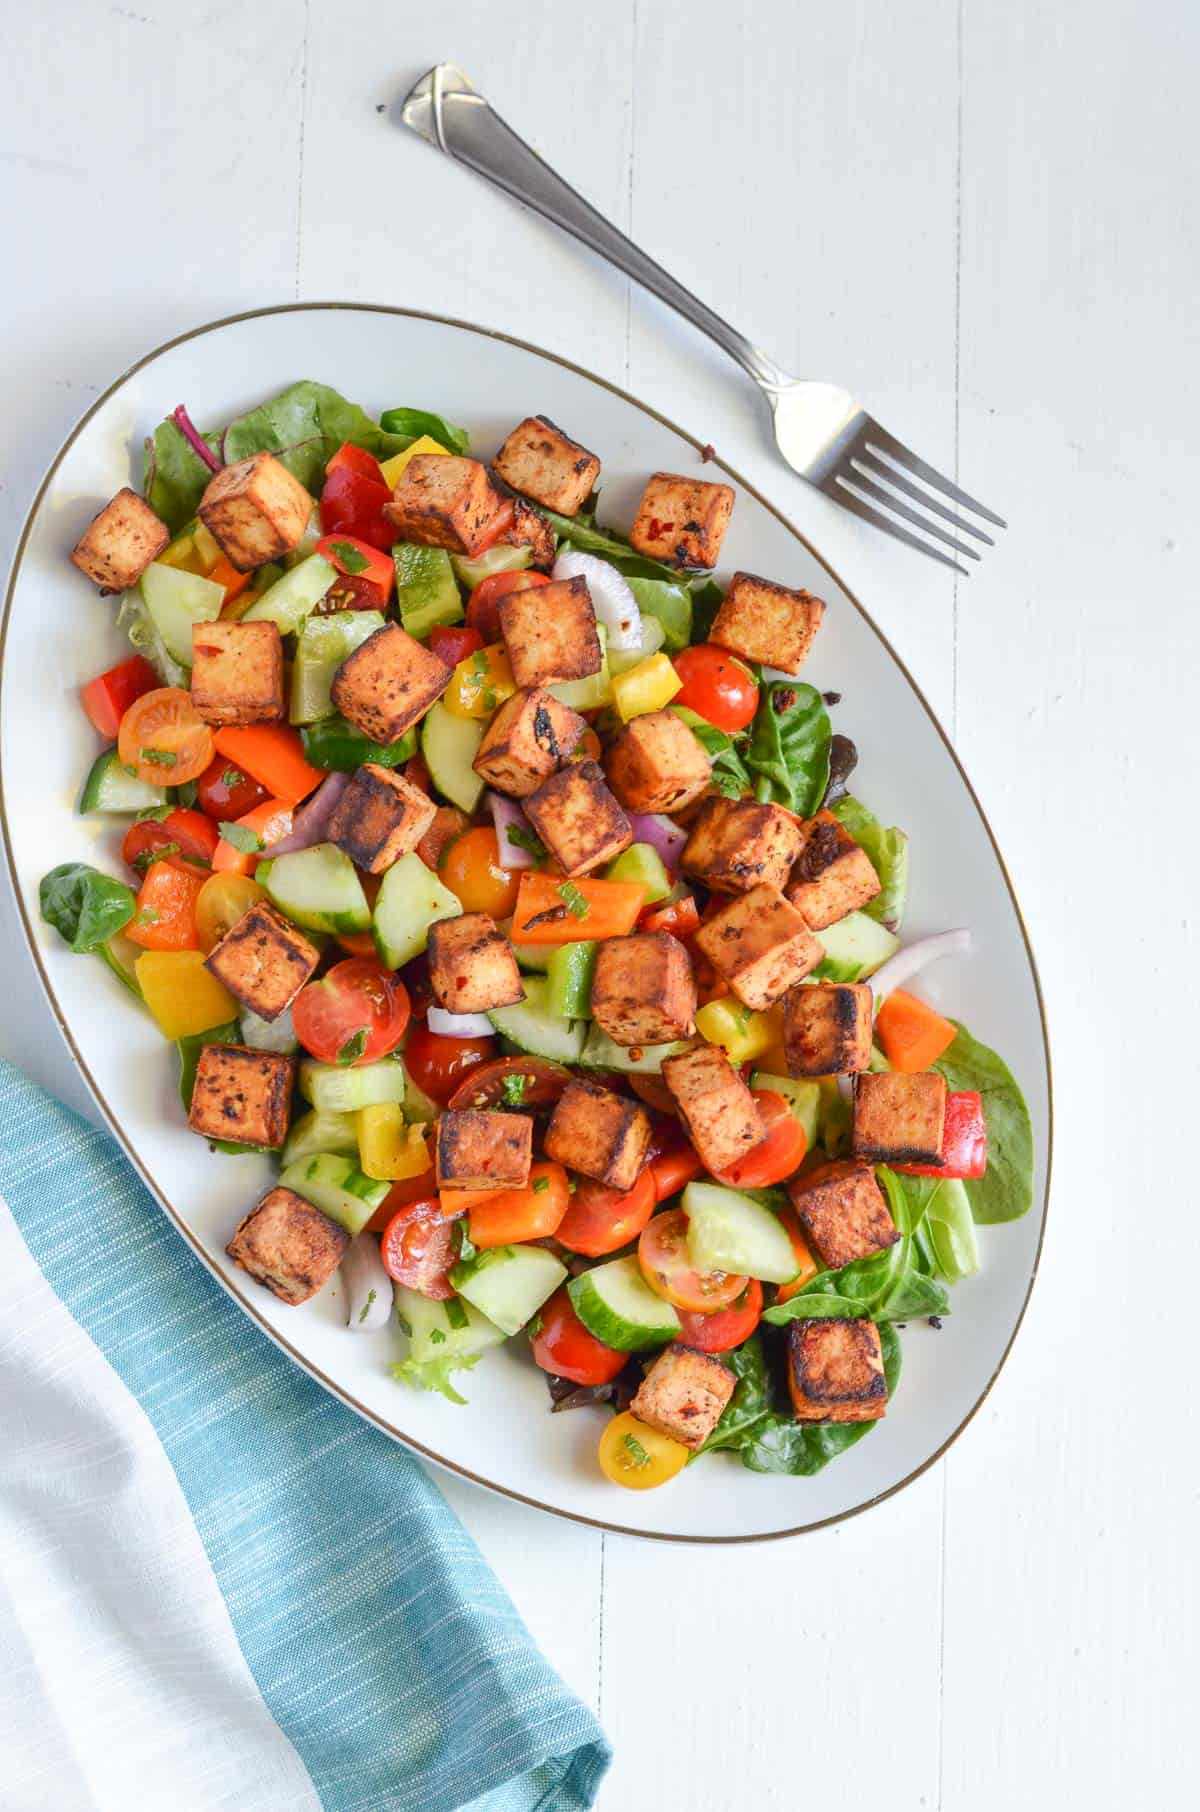 panzanella salad is served in oval platter.